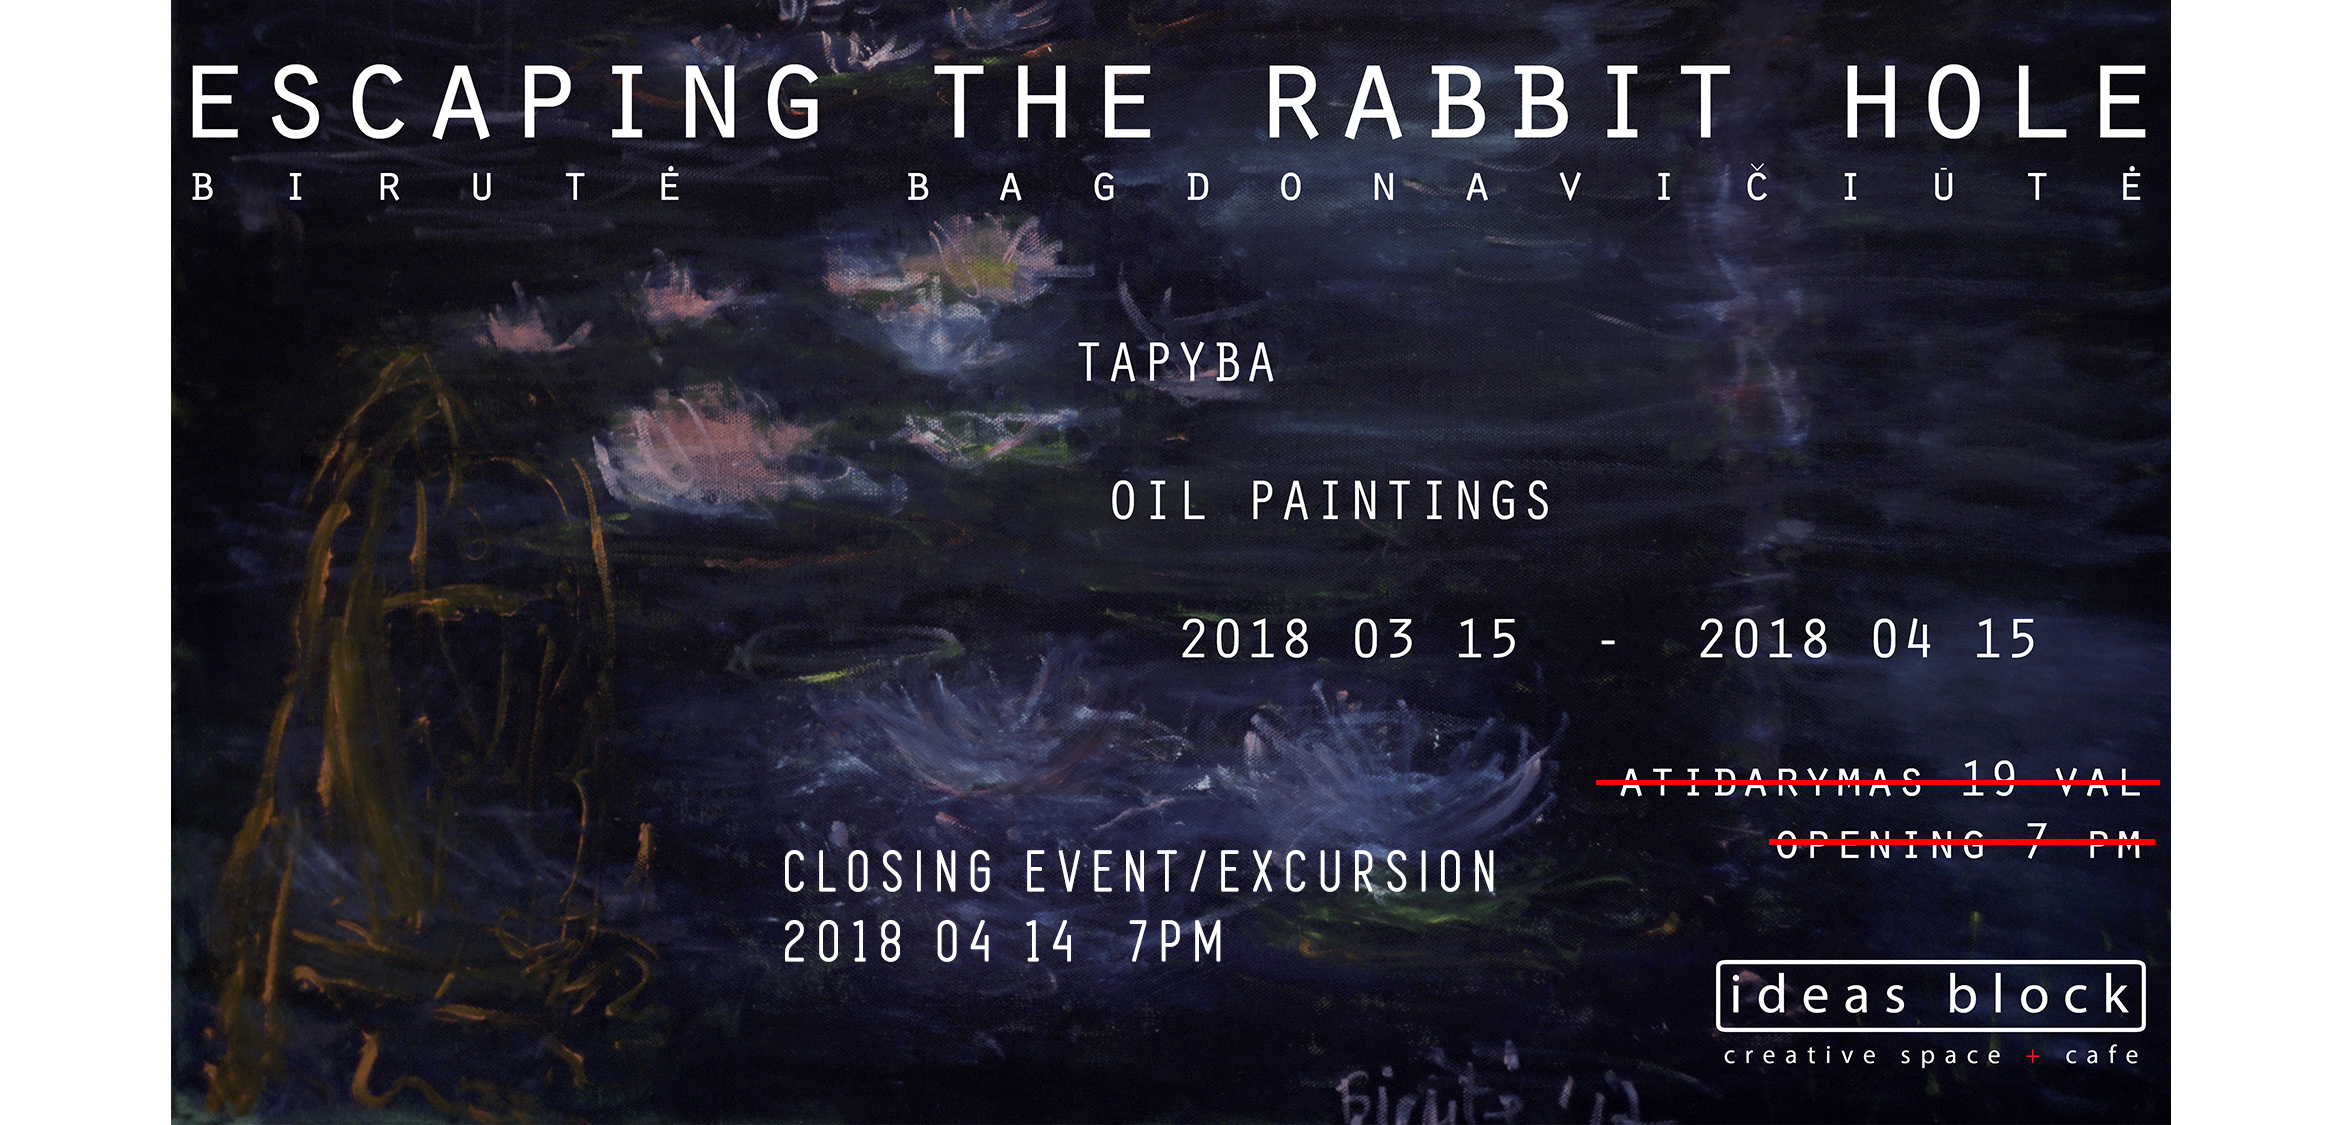 Escaping the Rabbit Hole closing event